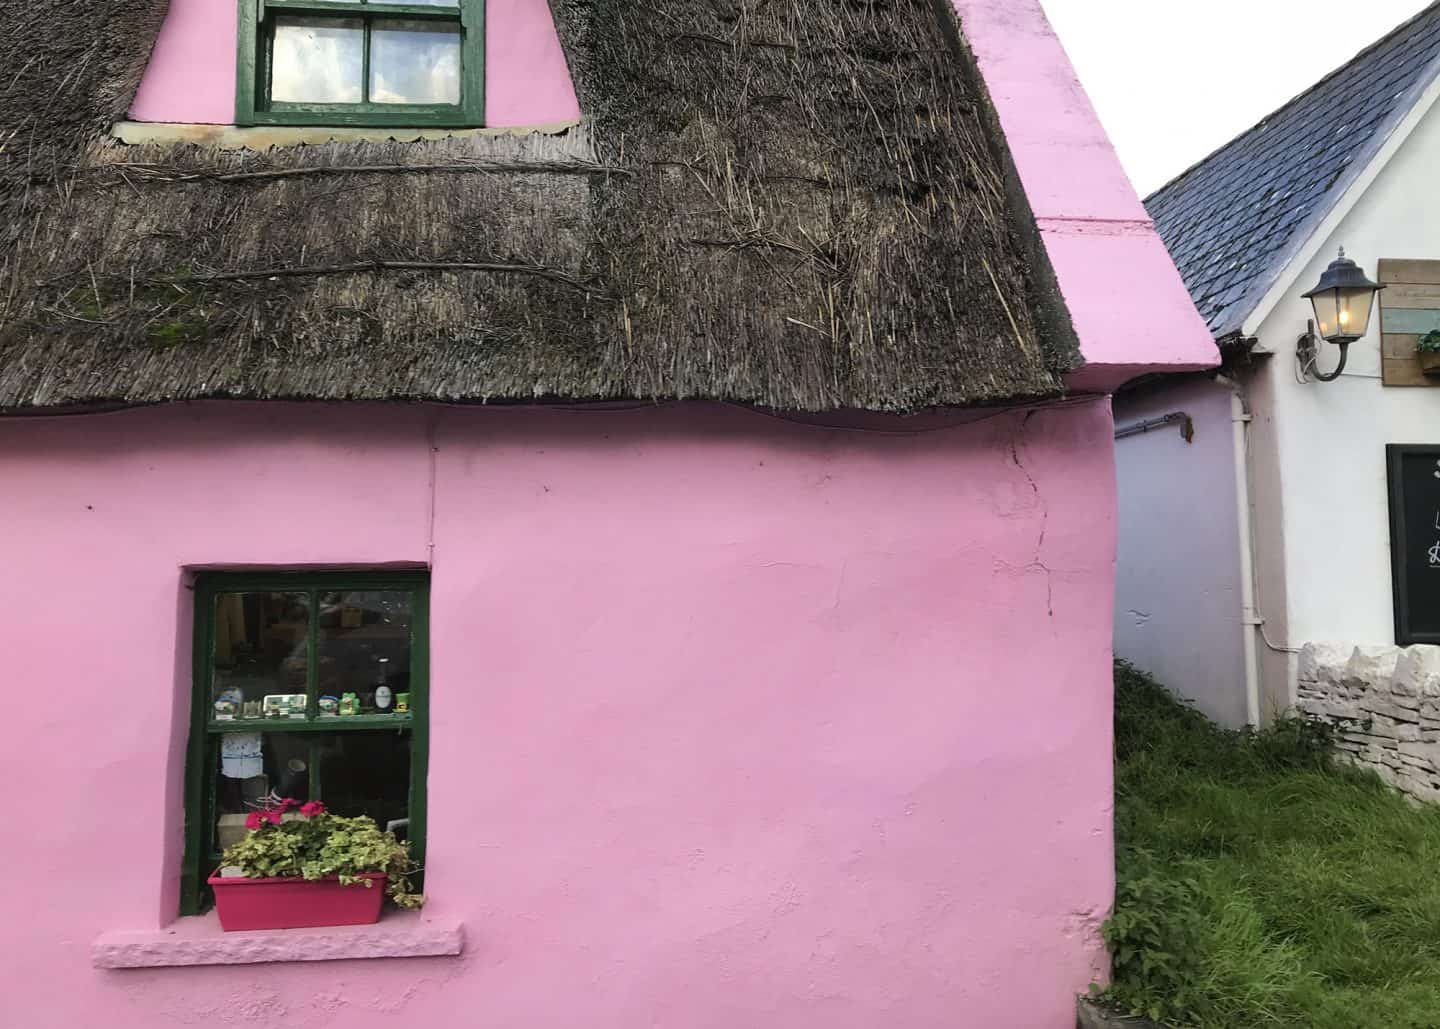 Doolin village is not far from the Cliffs of Moher in Ireland